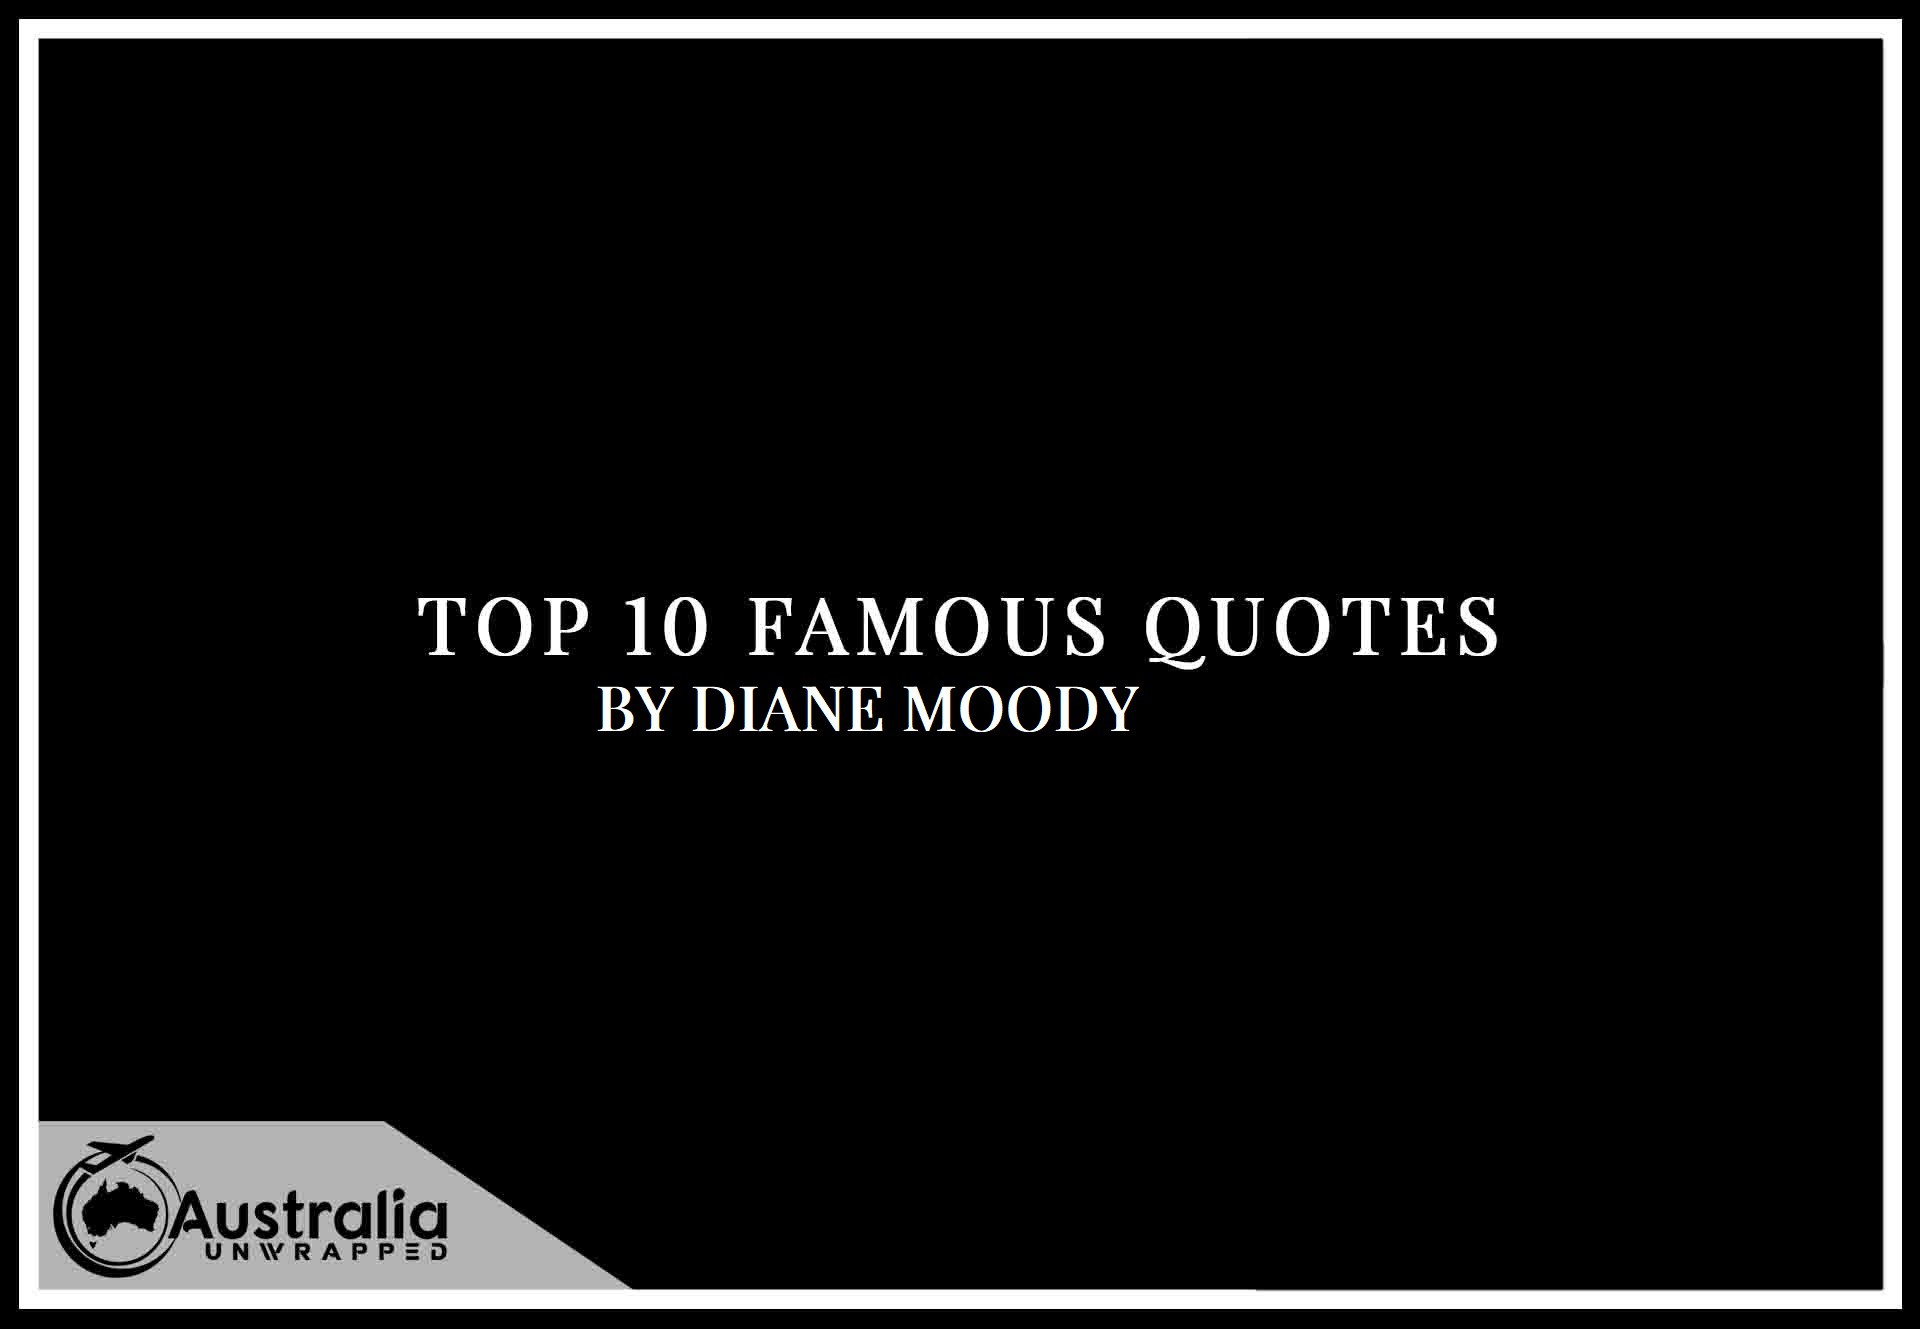 Top 10 Famous Quotes by Author Diane Moody